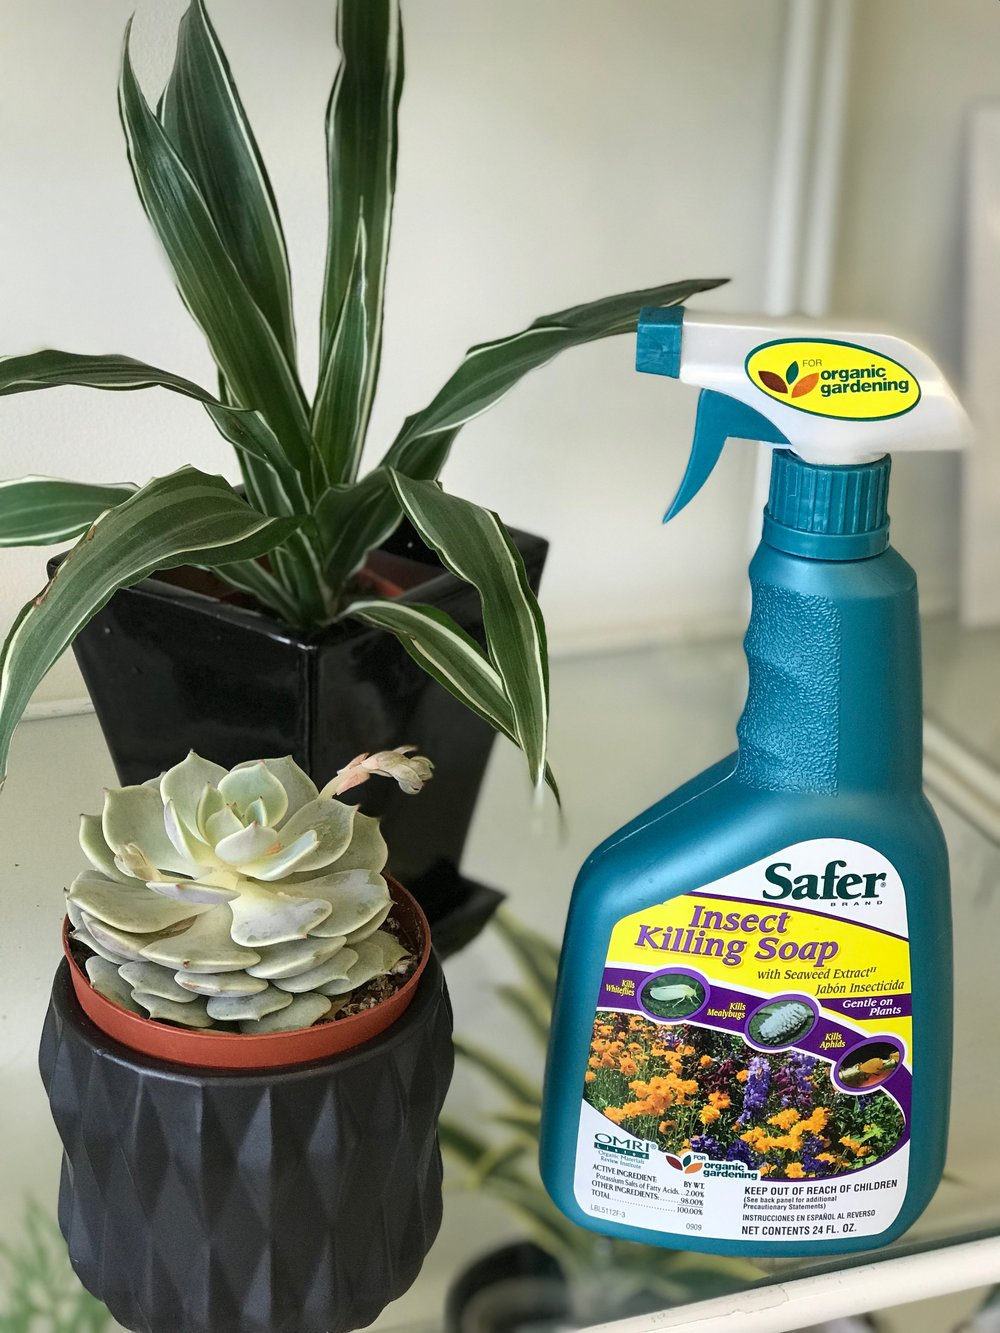 Homemade insect soap - Succulents are especially prone to mealy bug infestation. The active ingredient in this Safer brand soap is potassium. An easy homemade recipe is to combine 1 heavy tablespoon Dr Bronner's Castile soap and 1 qt tap water in a spray bottle. Apply weekly for 2-3 weeks until no more bugs are visible.